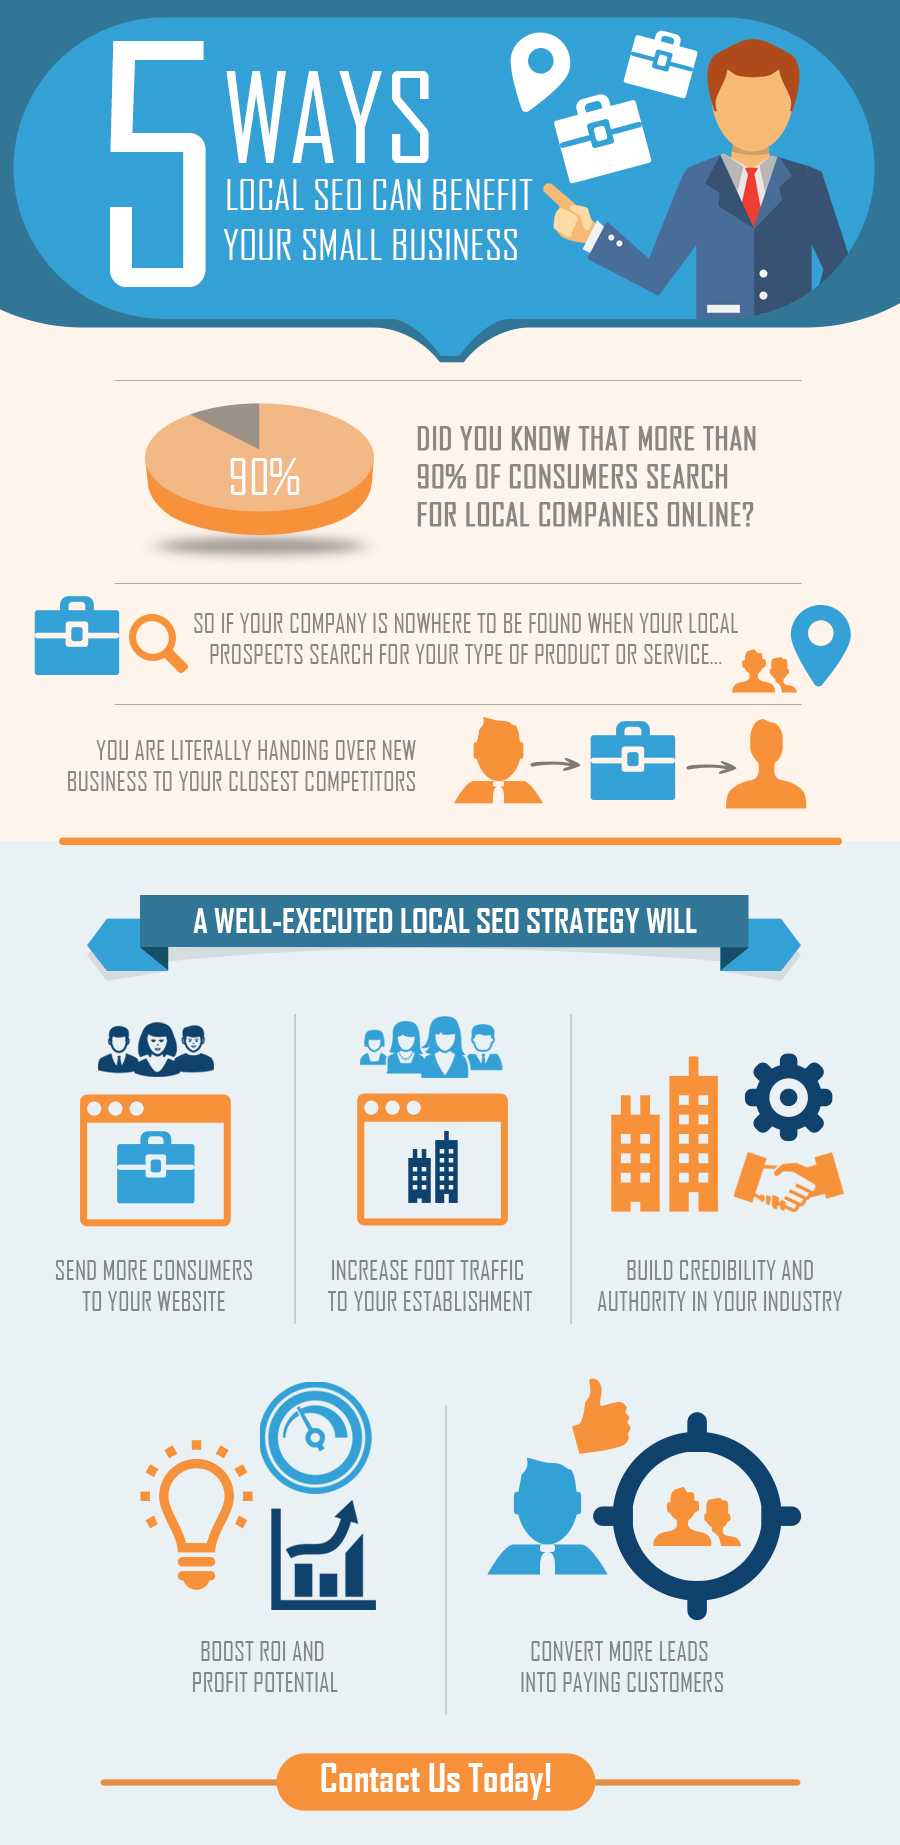 5-Ways-Local-SEO-Can-Benefit-Your-Small-Business